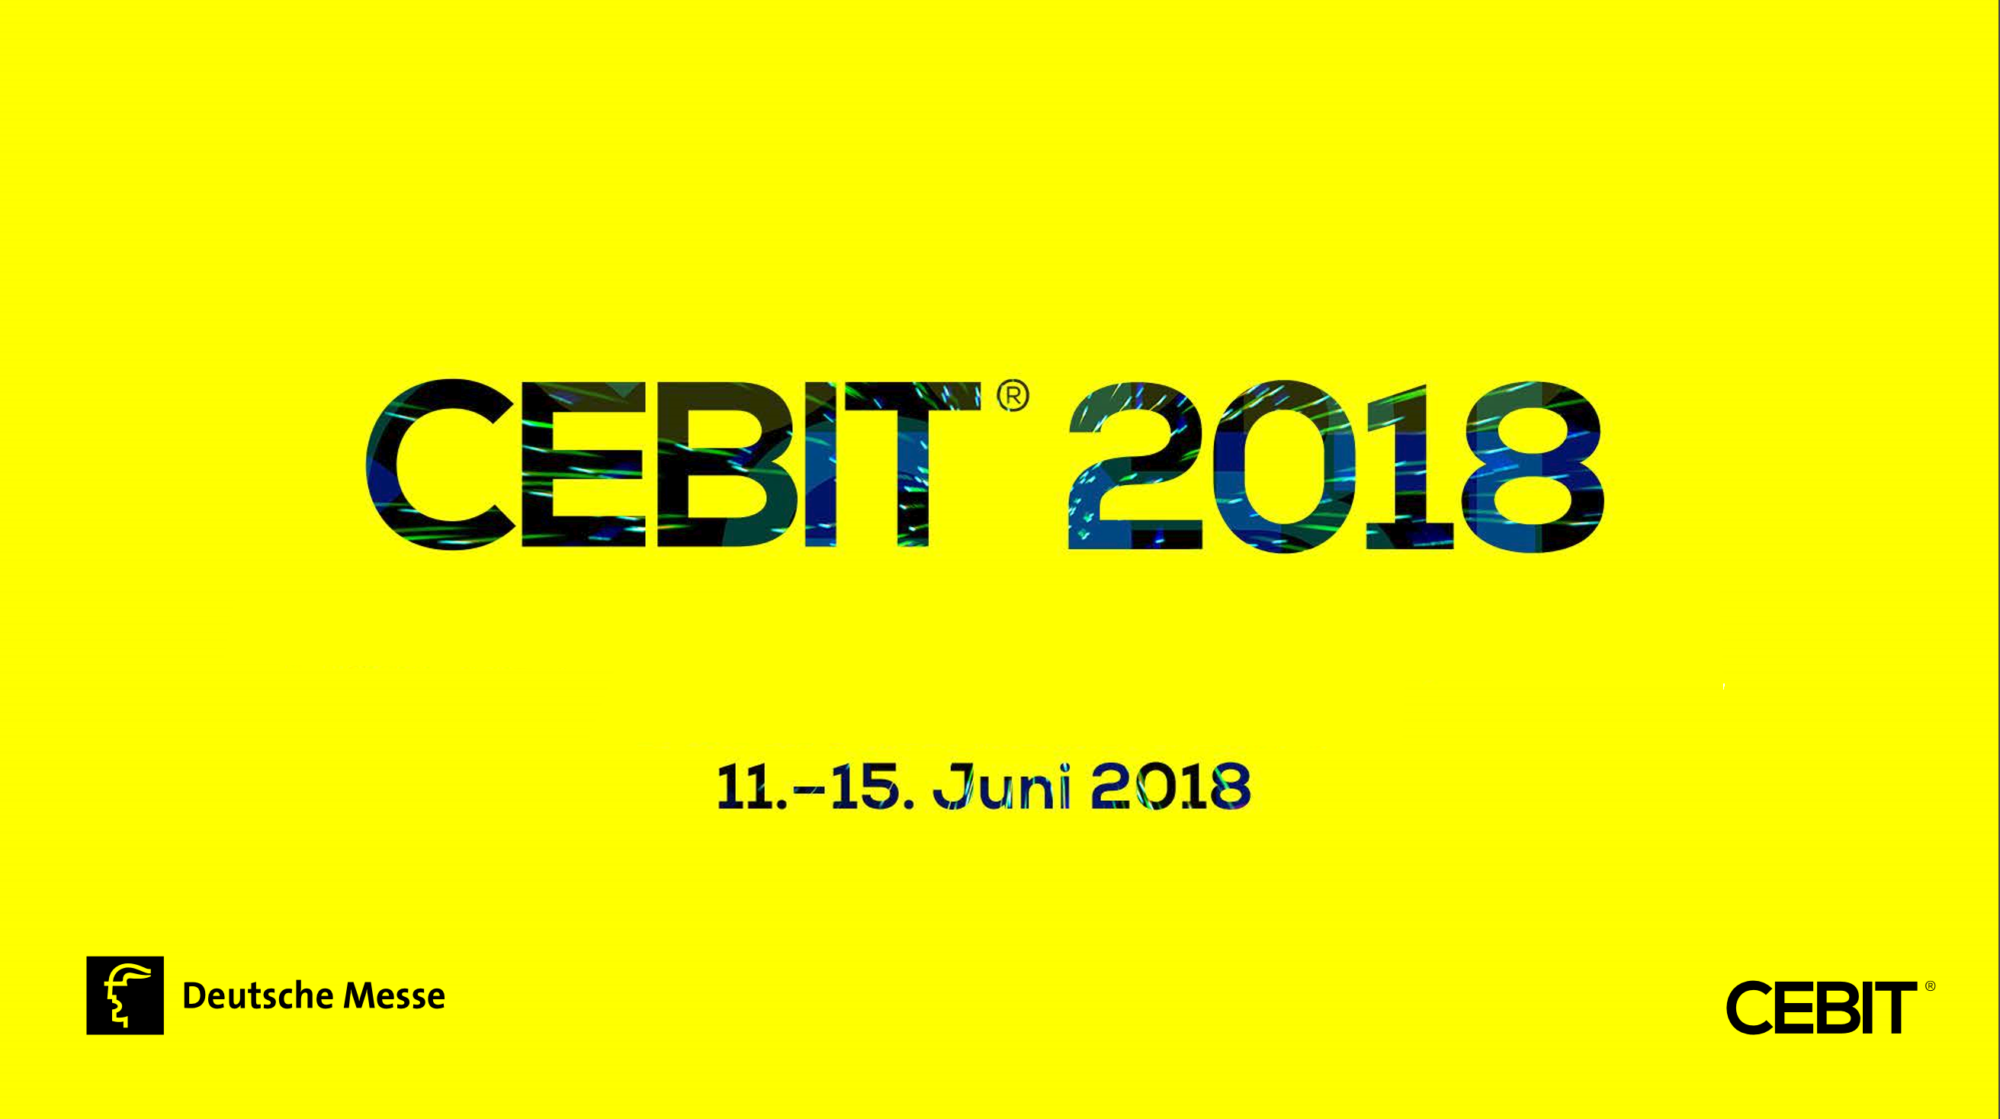 AMAGNO ON CEBIT 2018 e1504600042192 - Webconference: Intranet, Portale und Social ECM